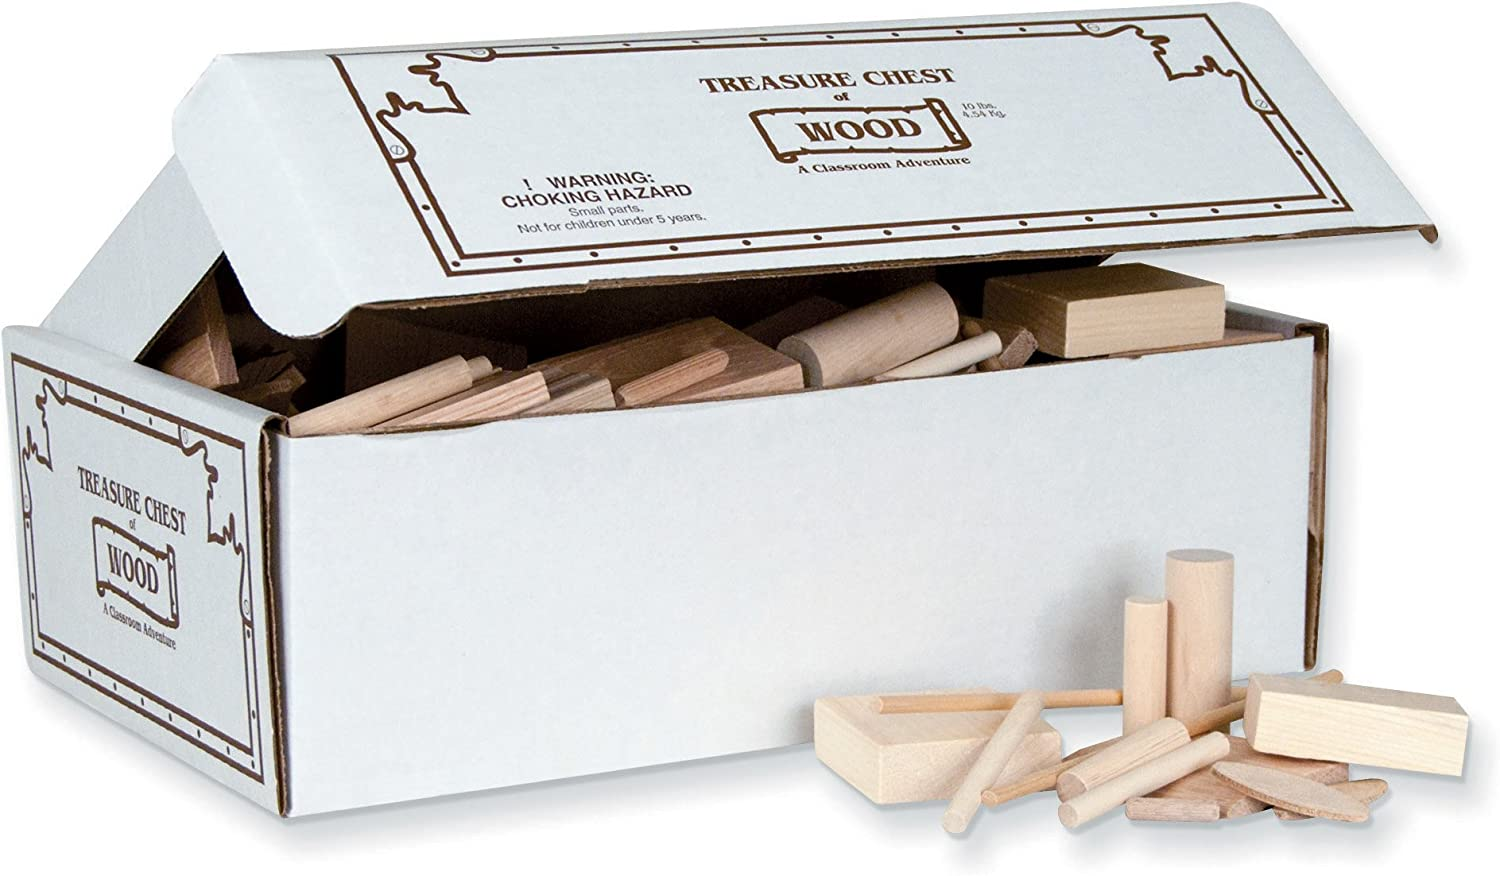 Pacon PAC25330 Treasure Chest of Wood, 10 lbs.